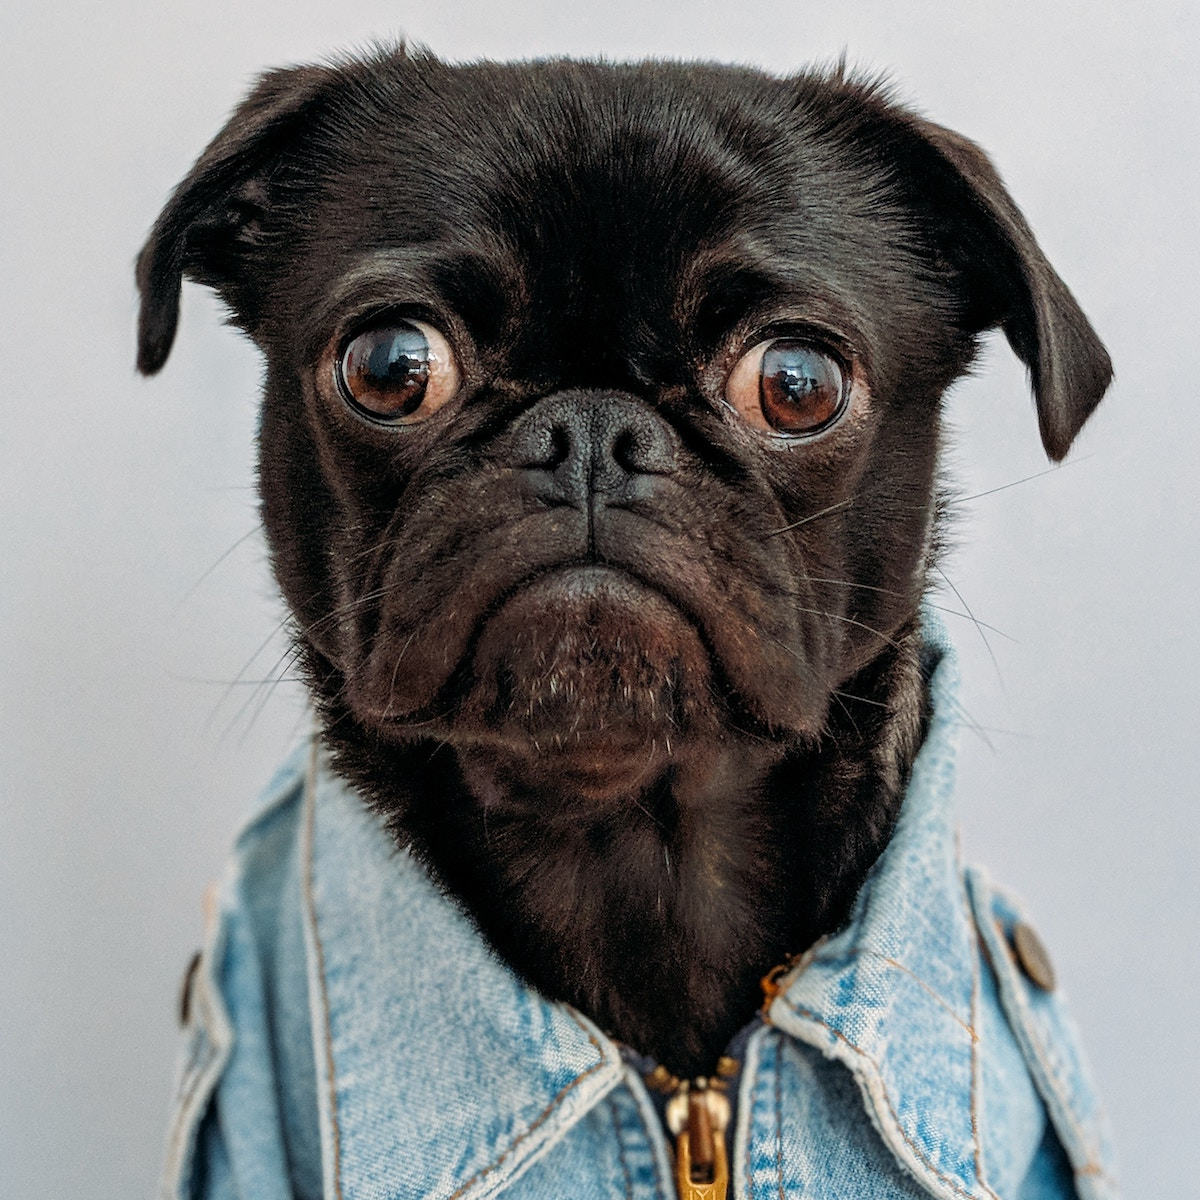 This dog is sad because coaching is closed and he hates denim